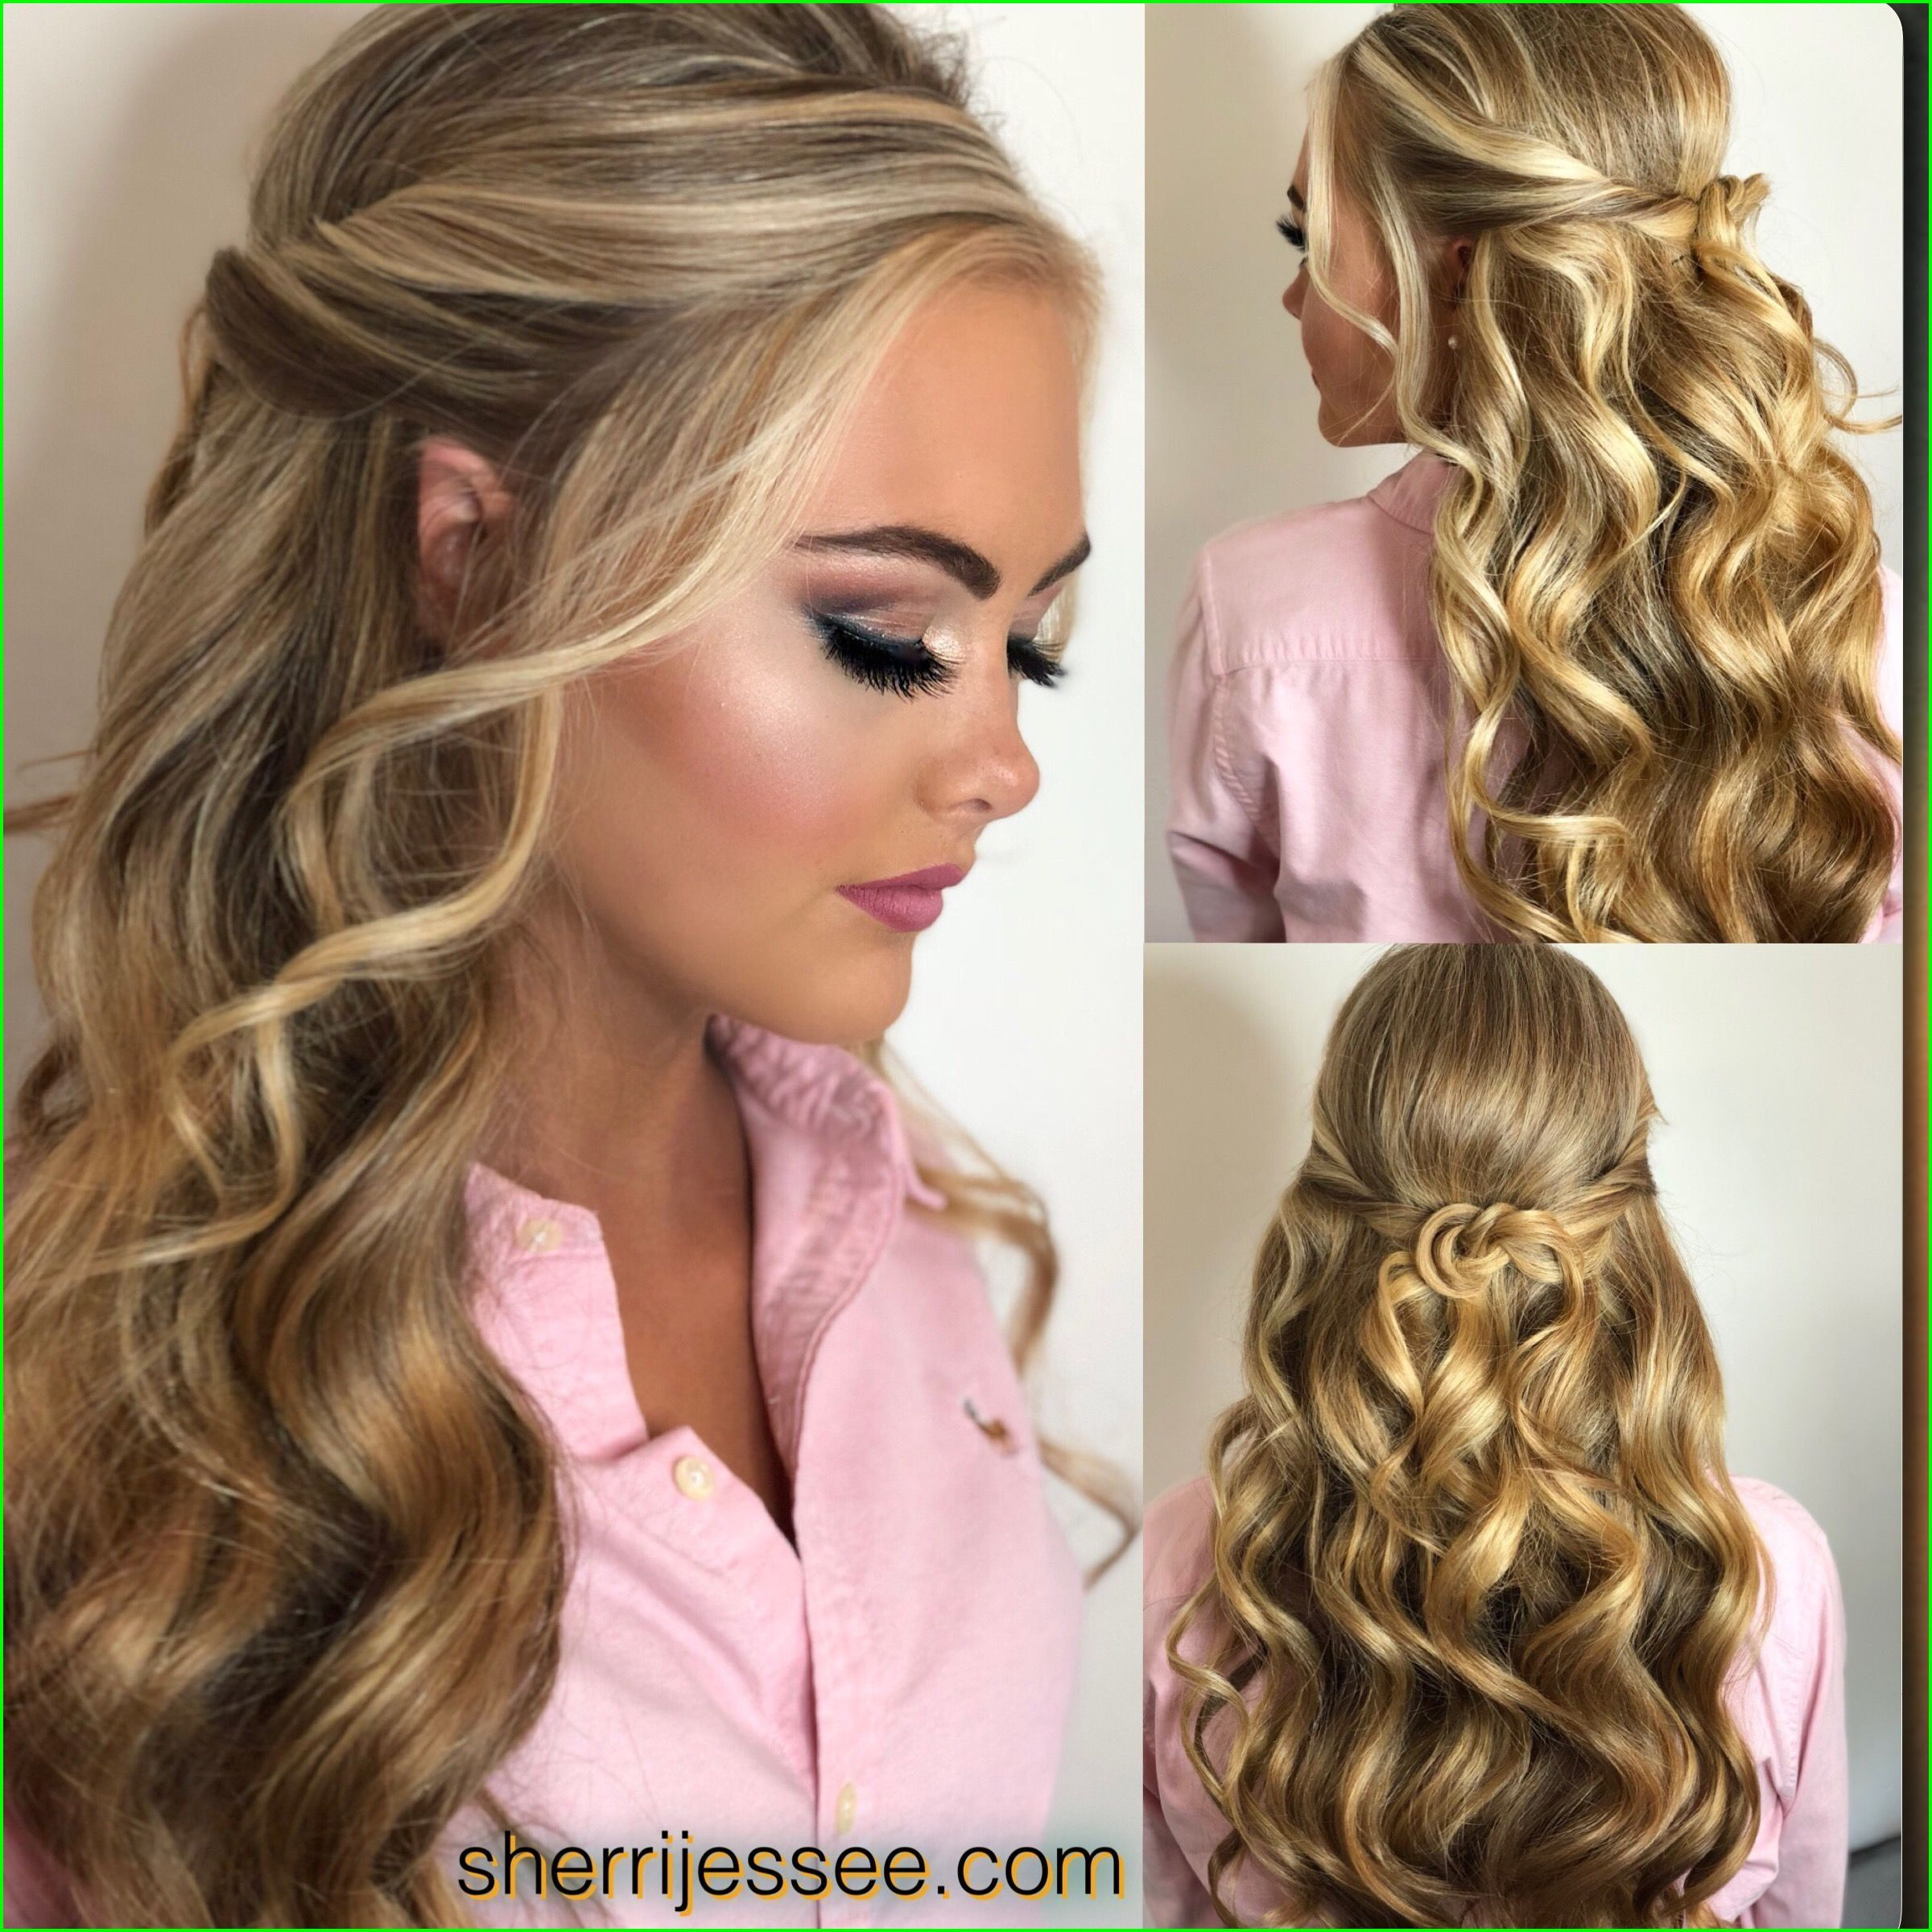 Prom Hairstyle Homecoming Hairstyle Hairstyle Hair Curly Prom Hair Curly Homecoming Hairstyles Homecoming Hairstyles